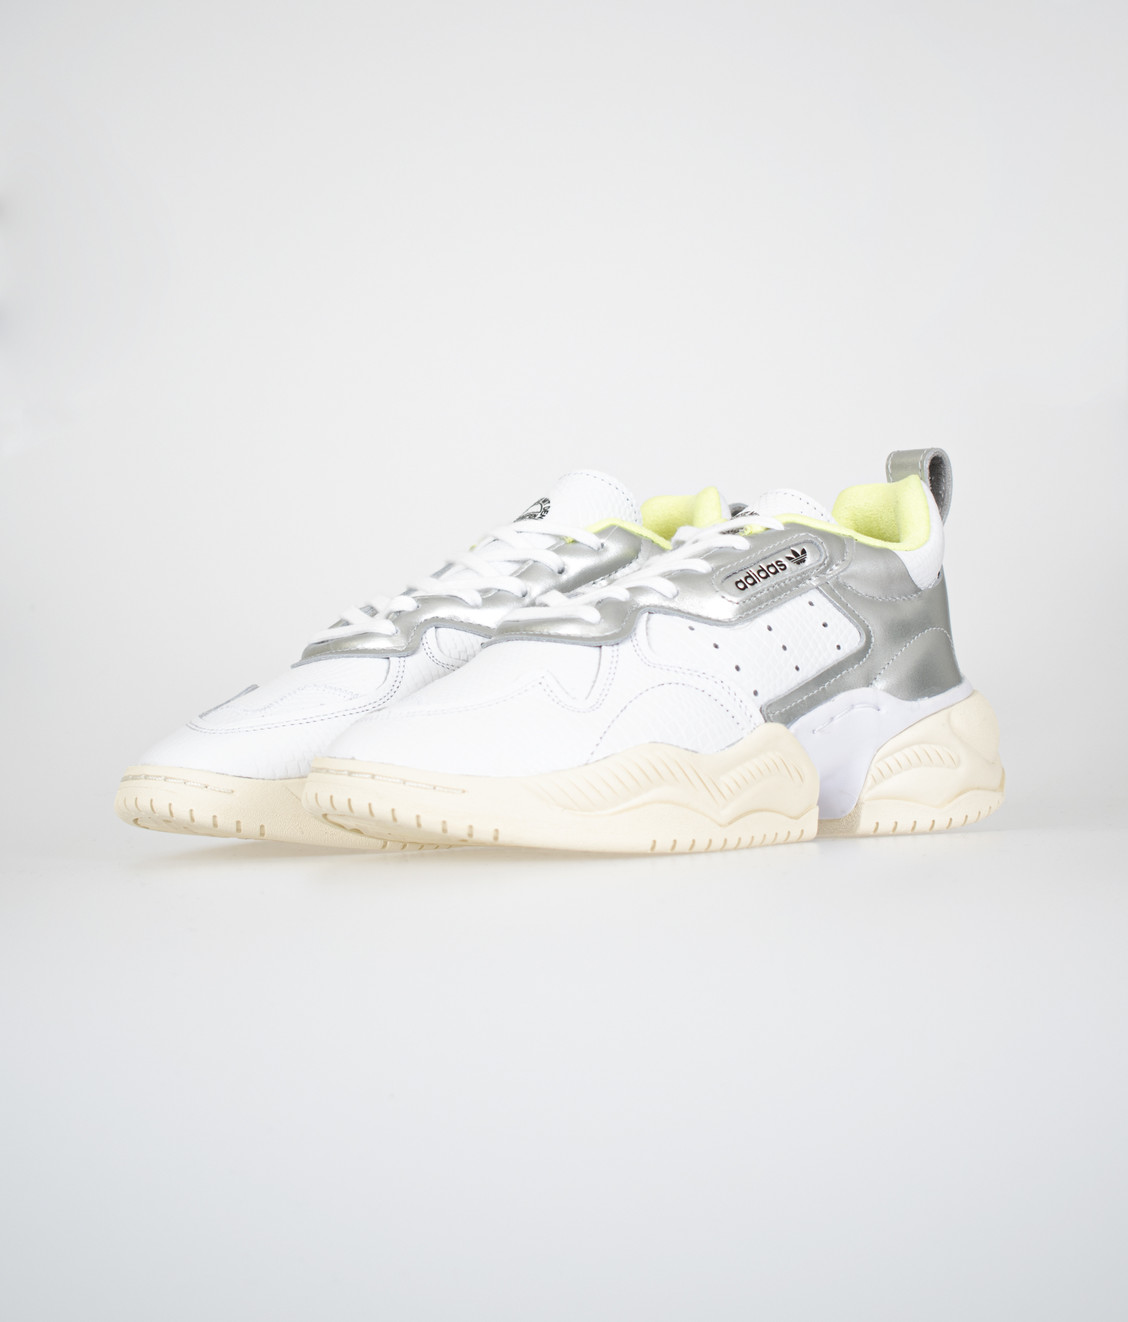 Adidas Adidas Supercourt RX Frozen Yellow